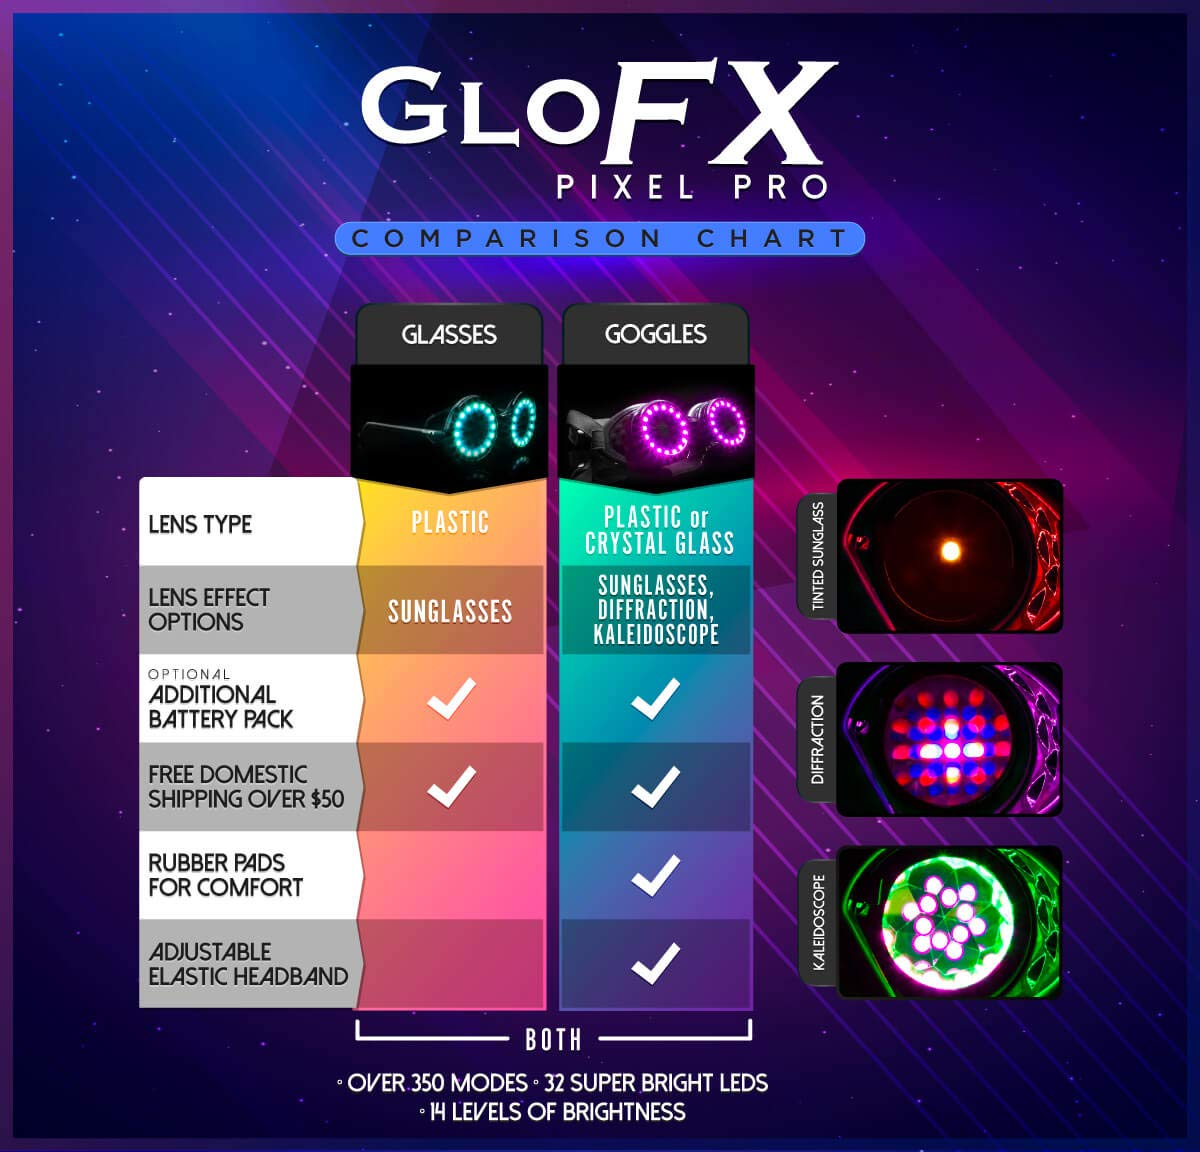 GloFX Pixel Pro LED Glasses [350+ Epic Modes] - Programmable Rechargeable Light Up EDM Festival Rave Party Sunglasses by GloFX (Image #7)